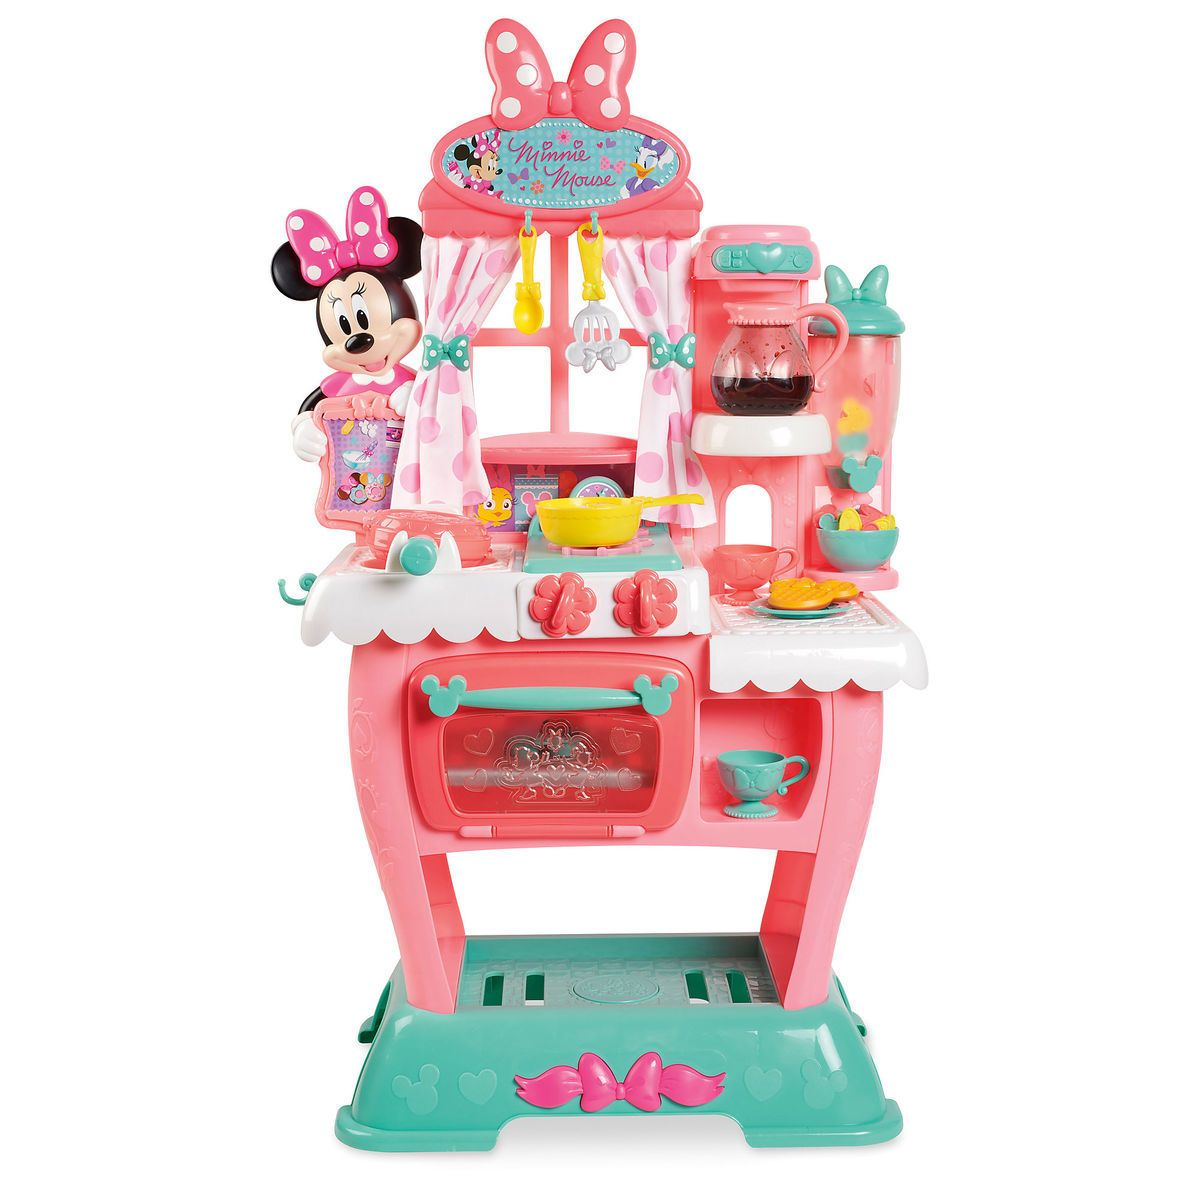 Minnie Mouse Brunch Cafe Playset That Little Coffee Pot Is Too Cute Kids Toy Shop Minnie Mouse Toys Baby Girl Toys